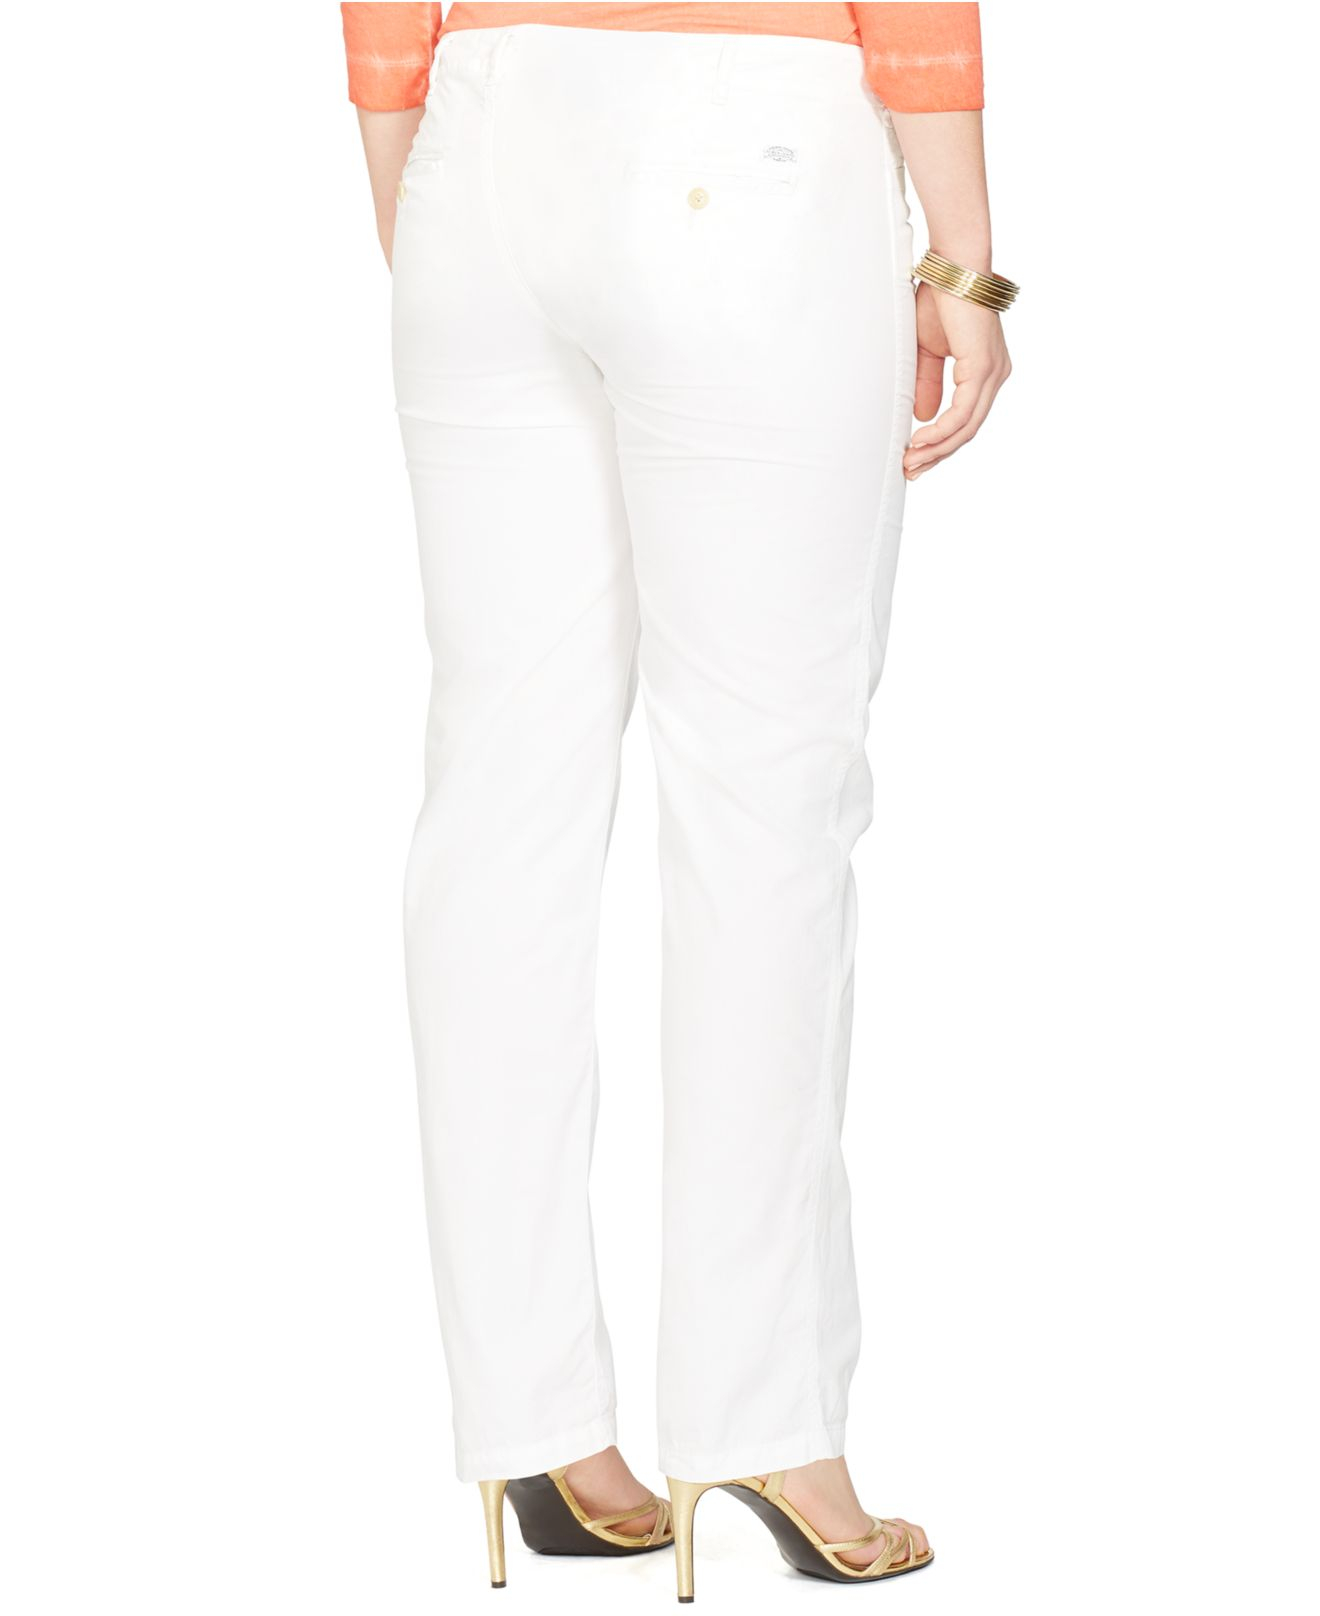 d17d0d74290 Lyst - Lauren by Ralph Lauren Plus Size Rolled-Cuff Chino Pants in White